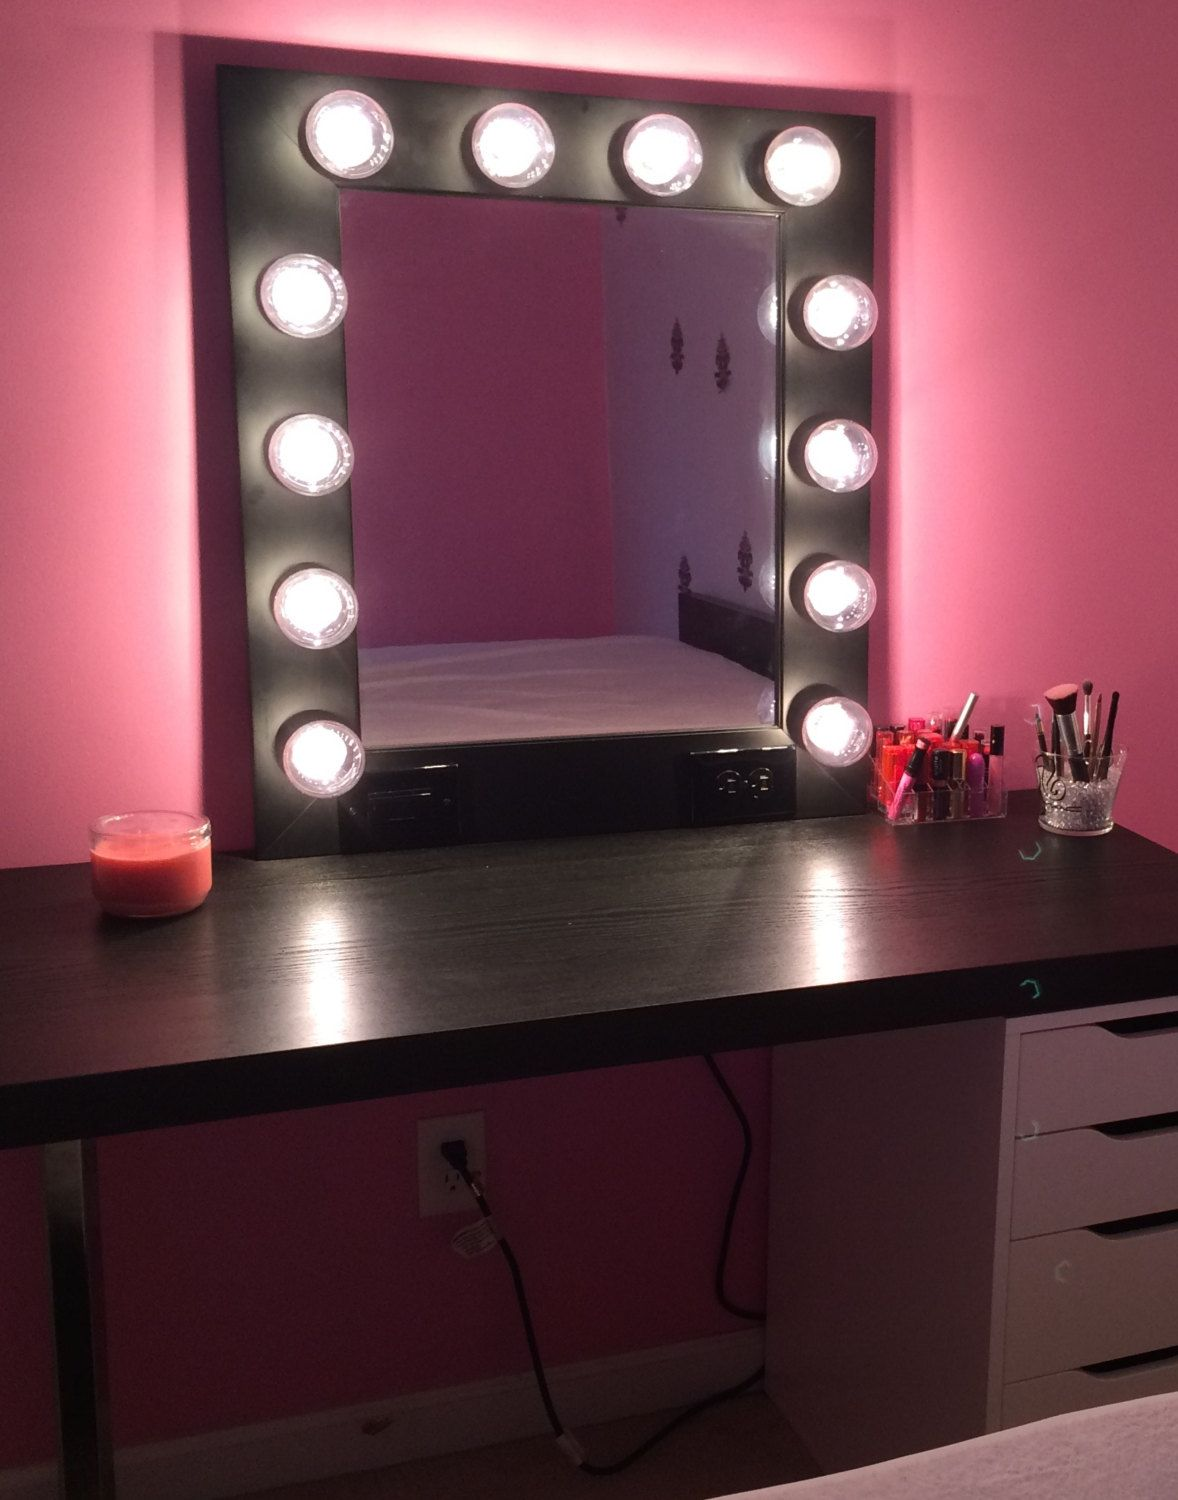 desk vanity mirror with lights. Vanity Makeup Mirror with Lights  Available Built in Digital LED Dimmer Limited Time SALE